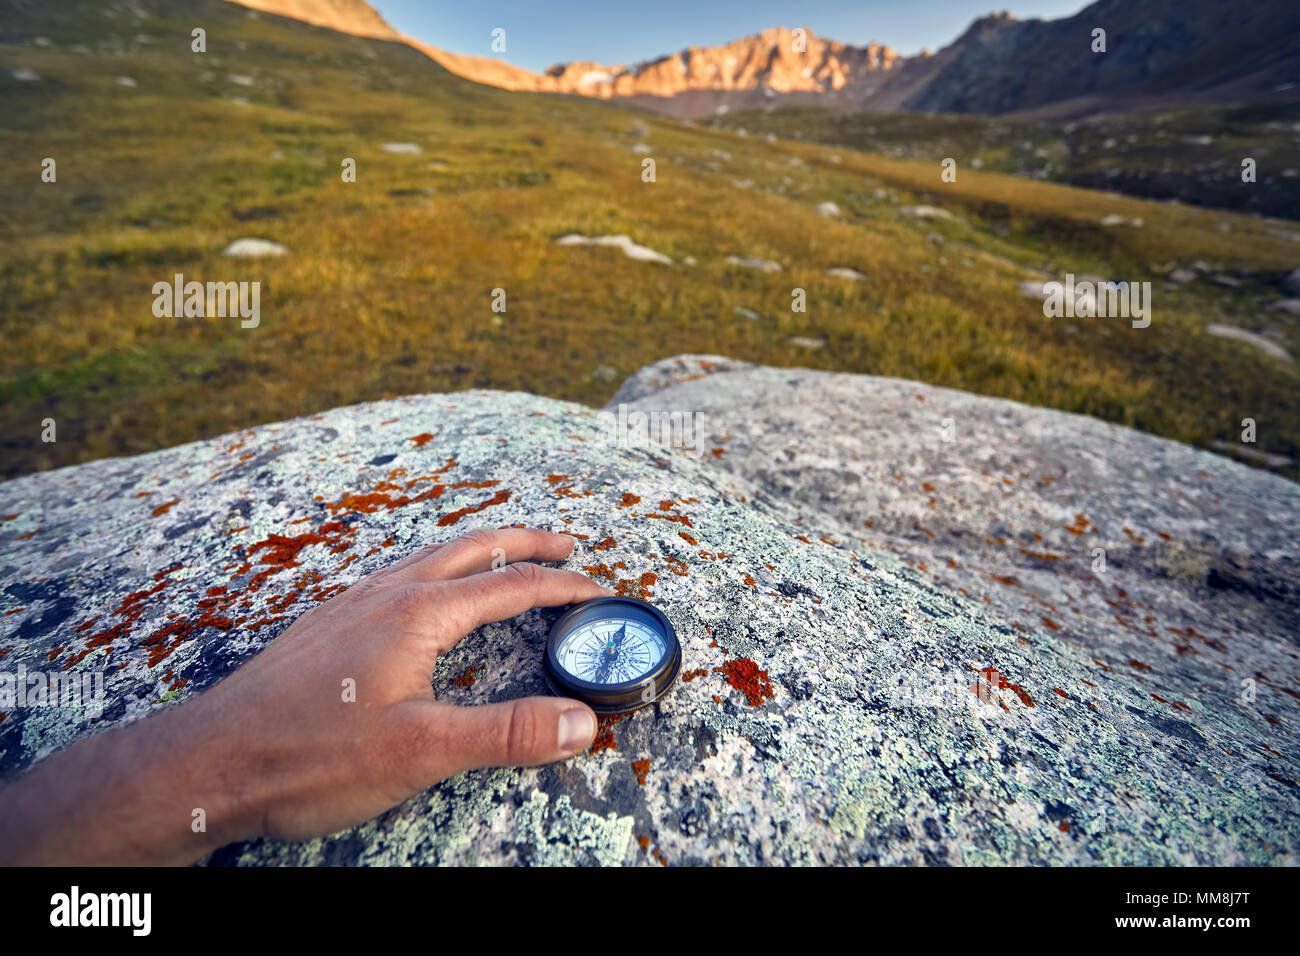 Tourist hand with vintage compass on the mountains background. Travel and adventure concept. - Stock Image